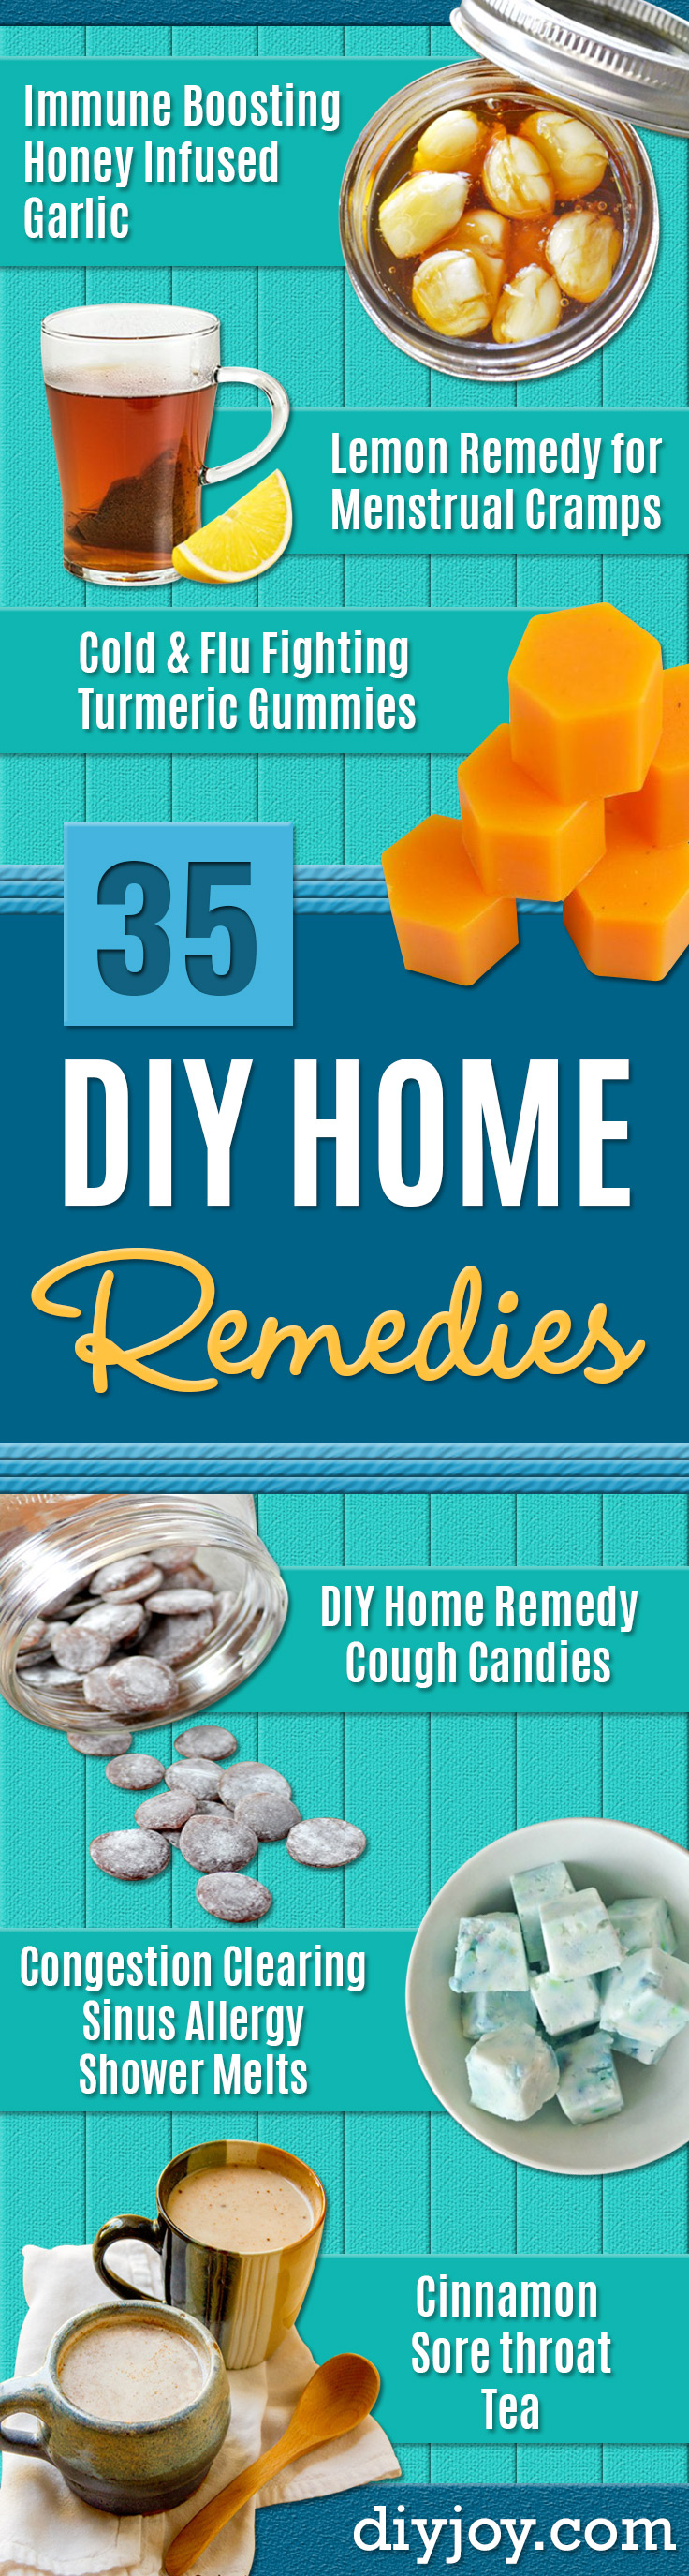 DIY Home Remedies - Homemade Recipes and Ideas for Help Relieve Symptoms of Cold and Flu, Upset Stomach, Rash, Cough, Sore Throat, Headache and Illness - Skincare Products, Balms, Lotions and Teas - Homeopathic Solutions and Remedy for Common Sickness http://diyjoy.com/diy-home-remedies